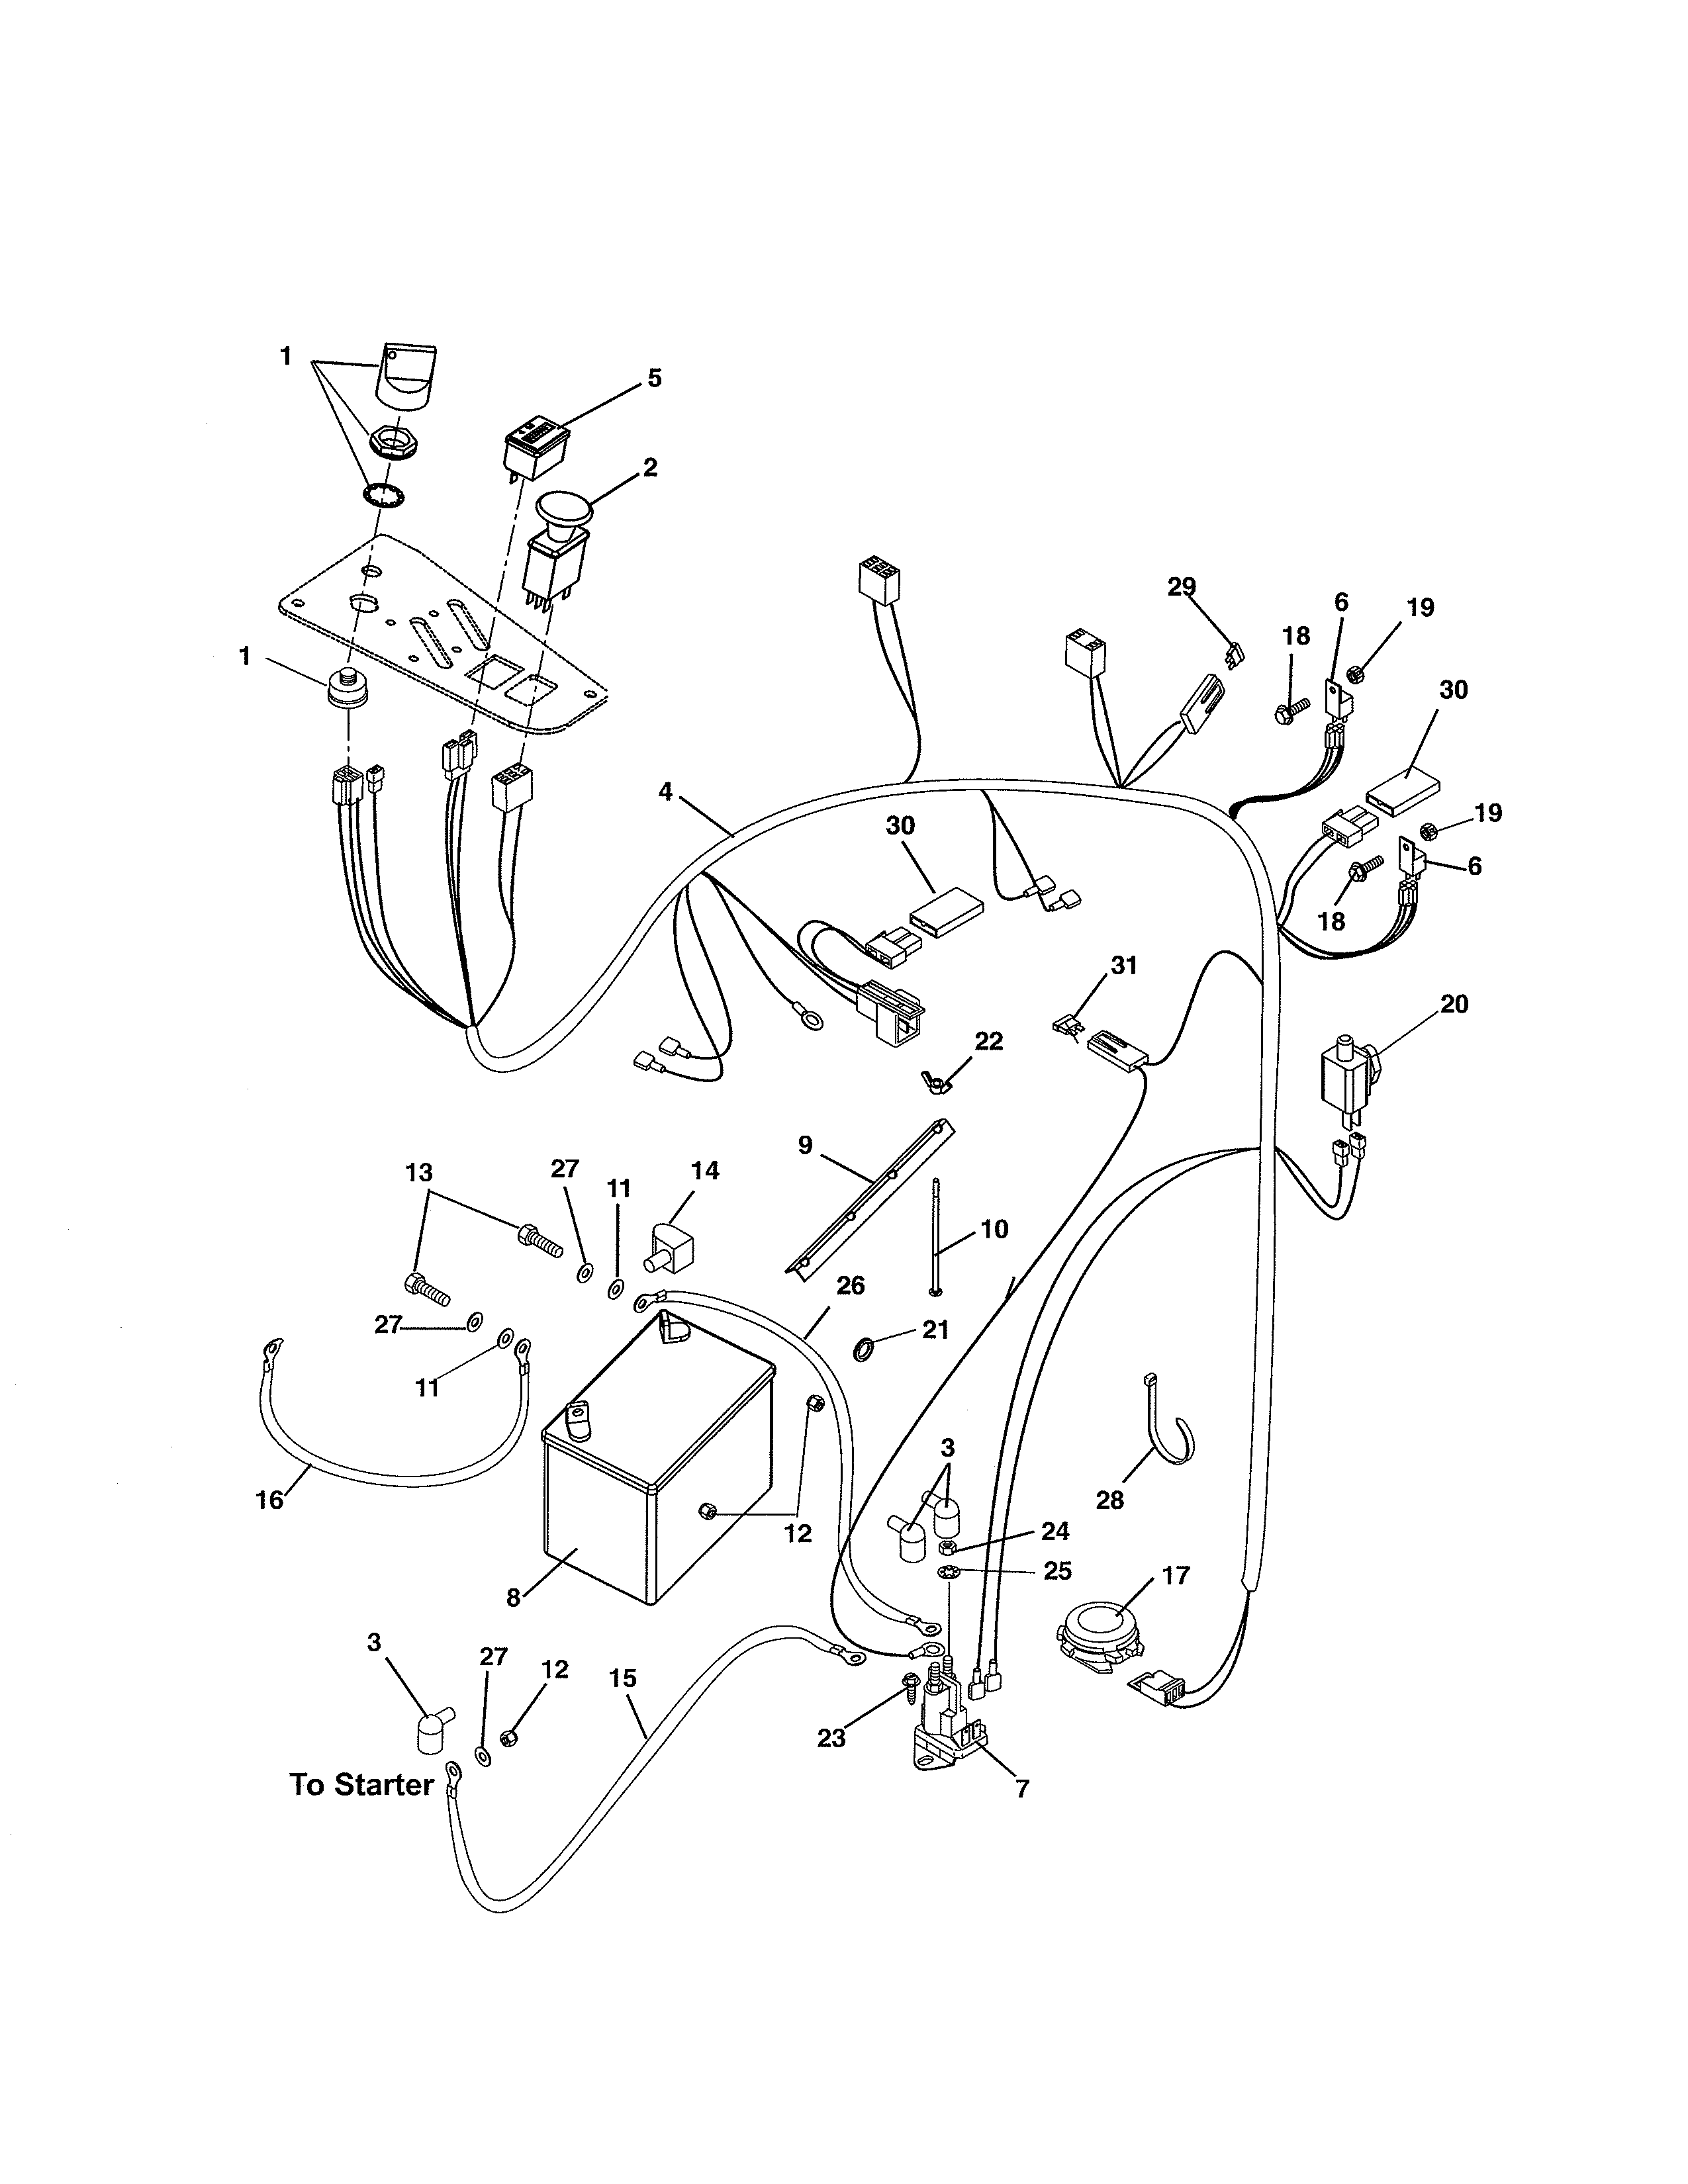 Ariens 99105600 (101-999999) electrical system diagram